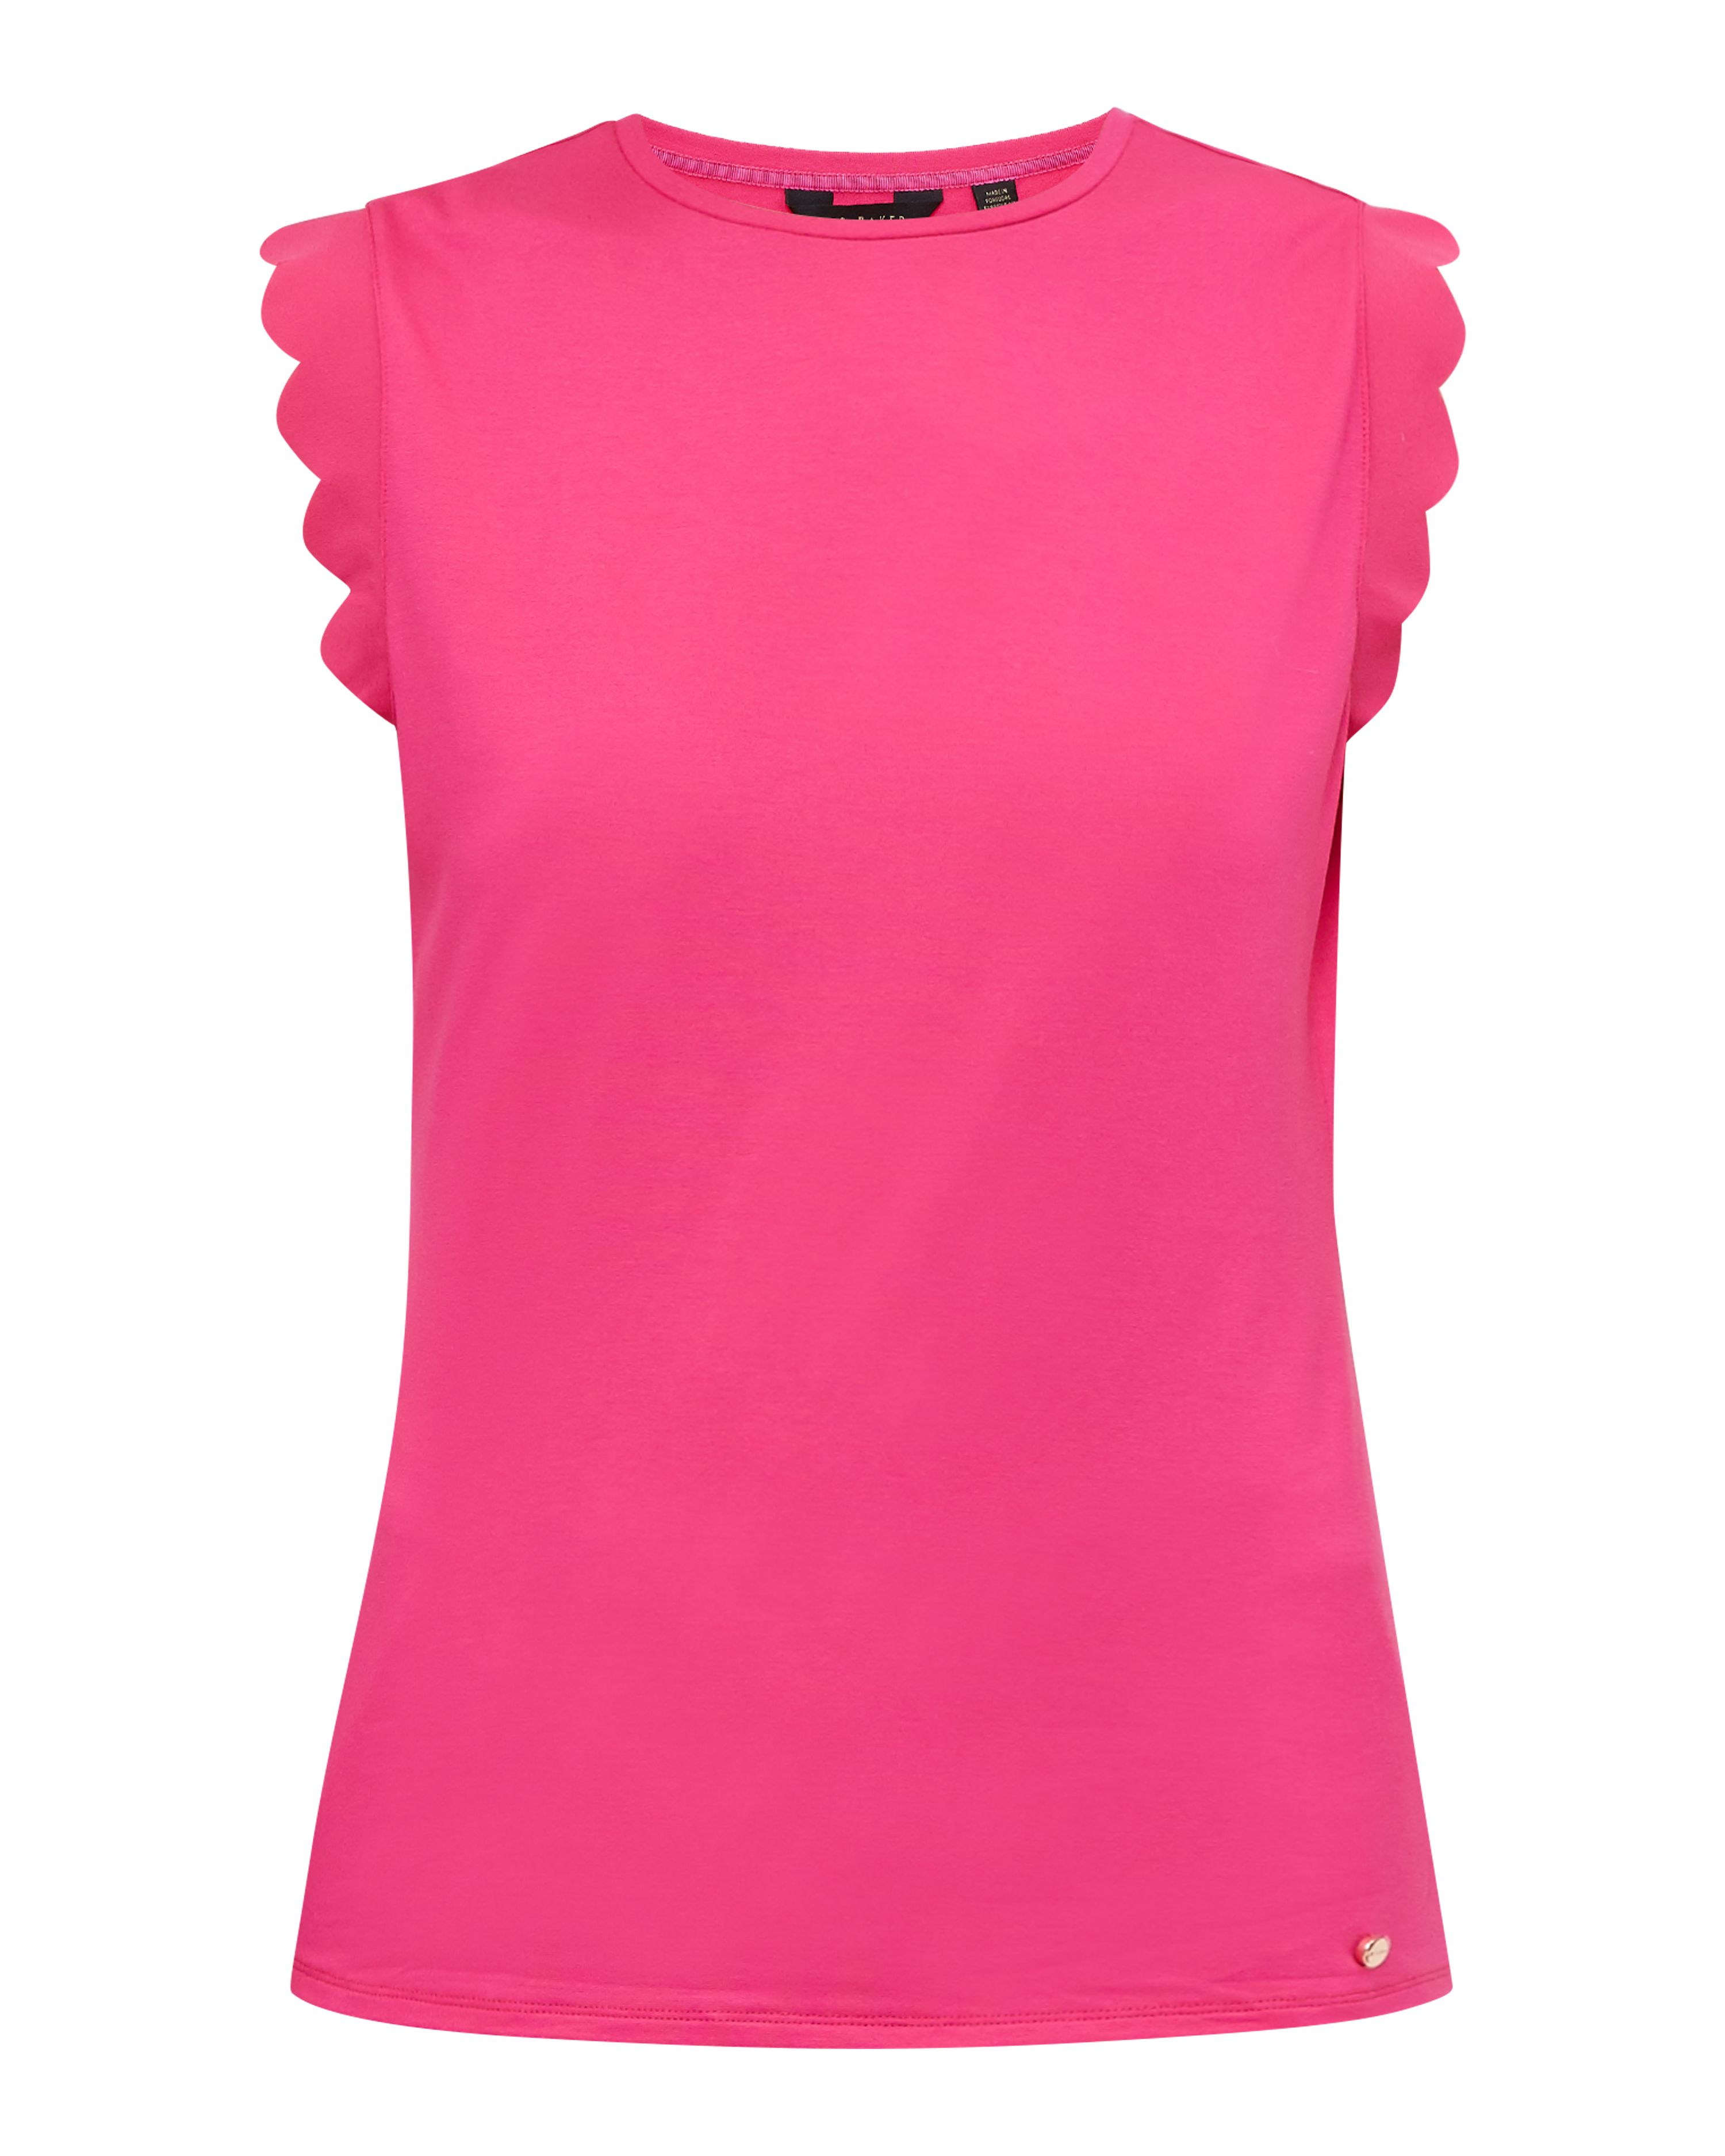 Ted Baker Elliah Scallop Detail Fitted TShirt Fuchsia